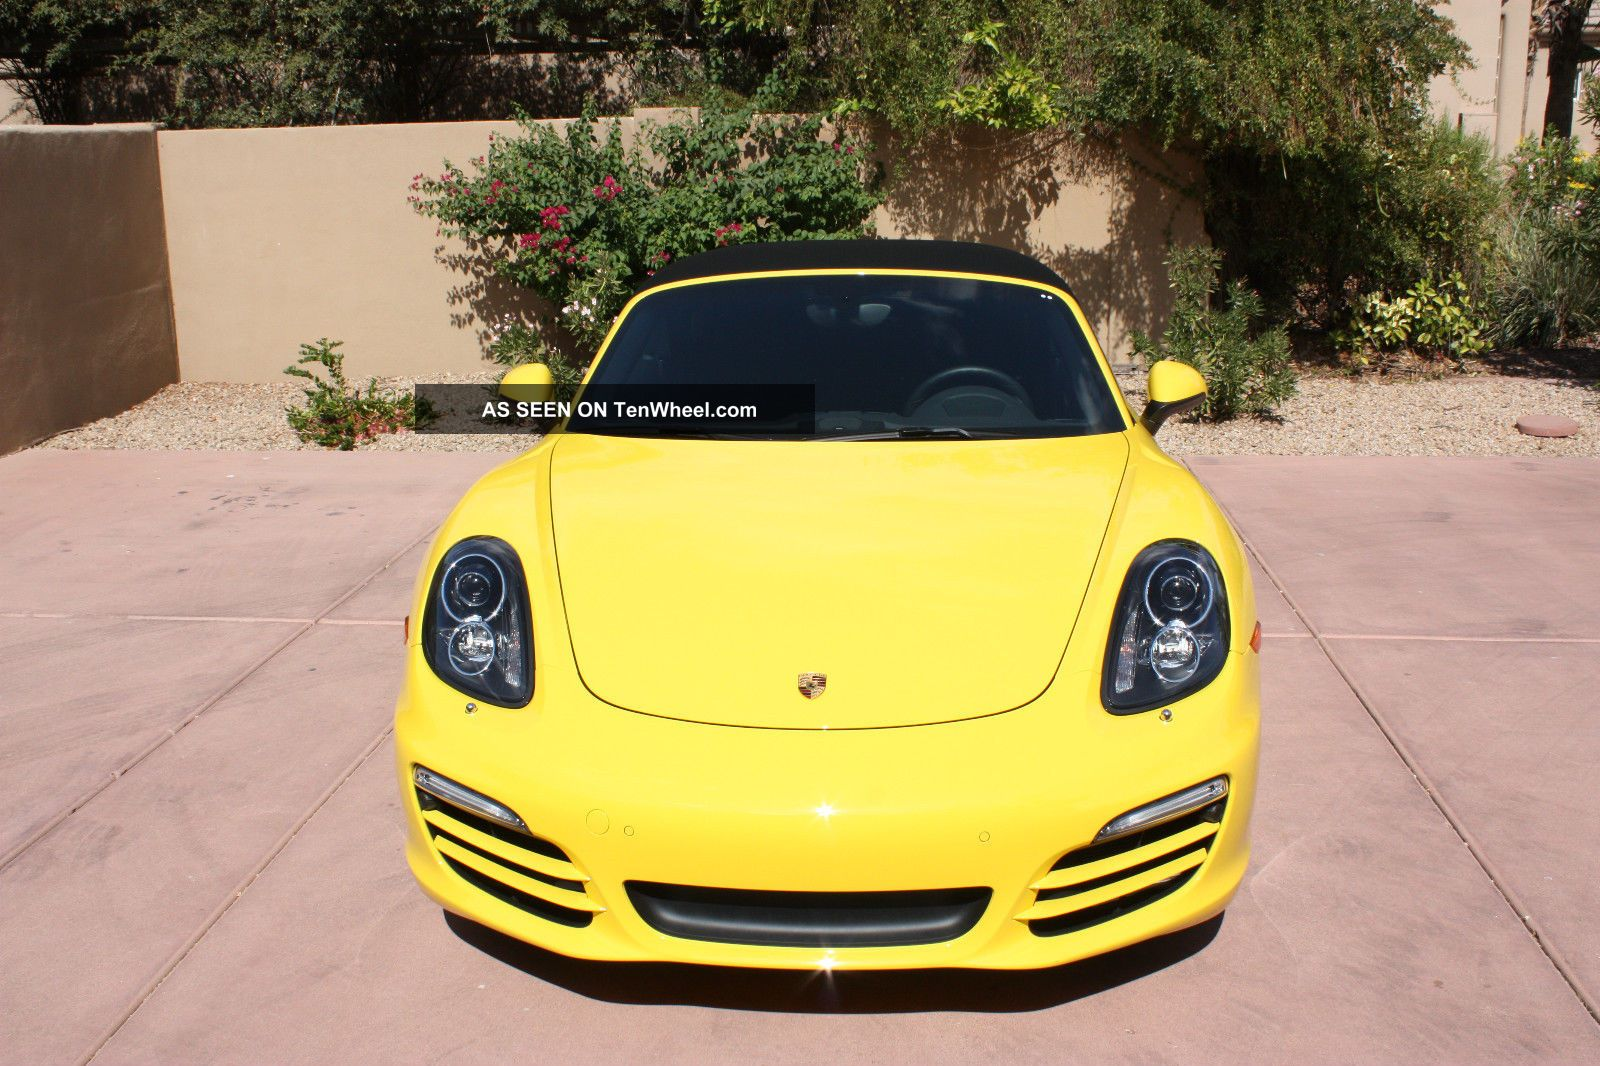 2014 Porsche Boxster Yellow With Black Rims Boxster photo